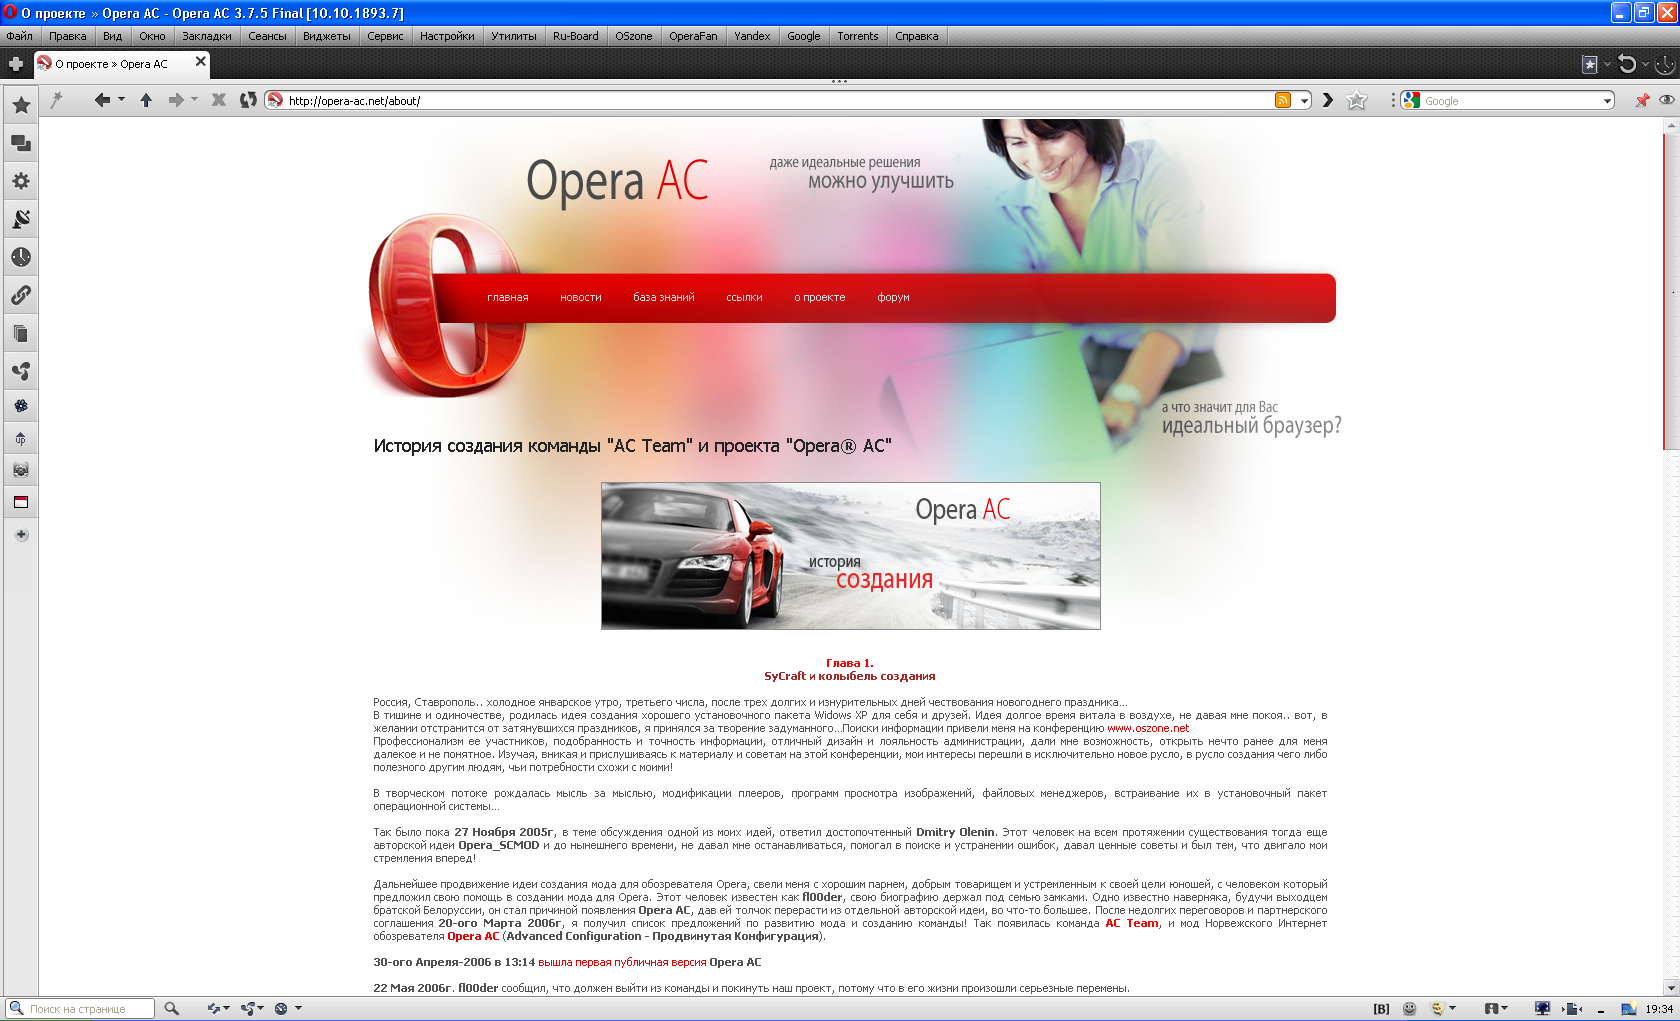 Opera AC Main Window